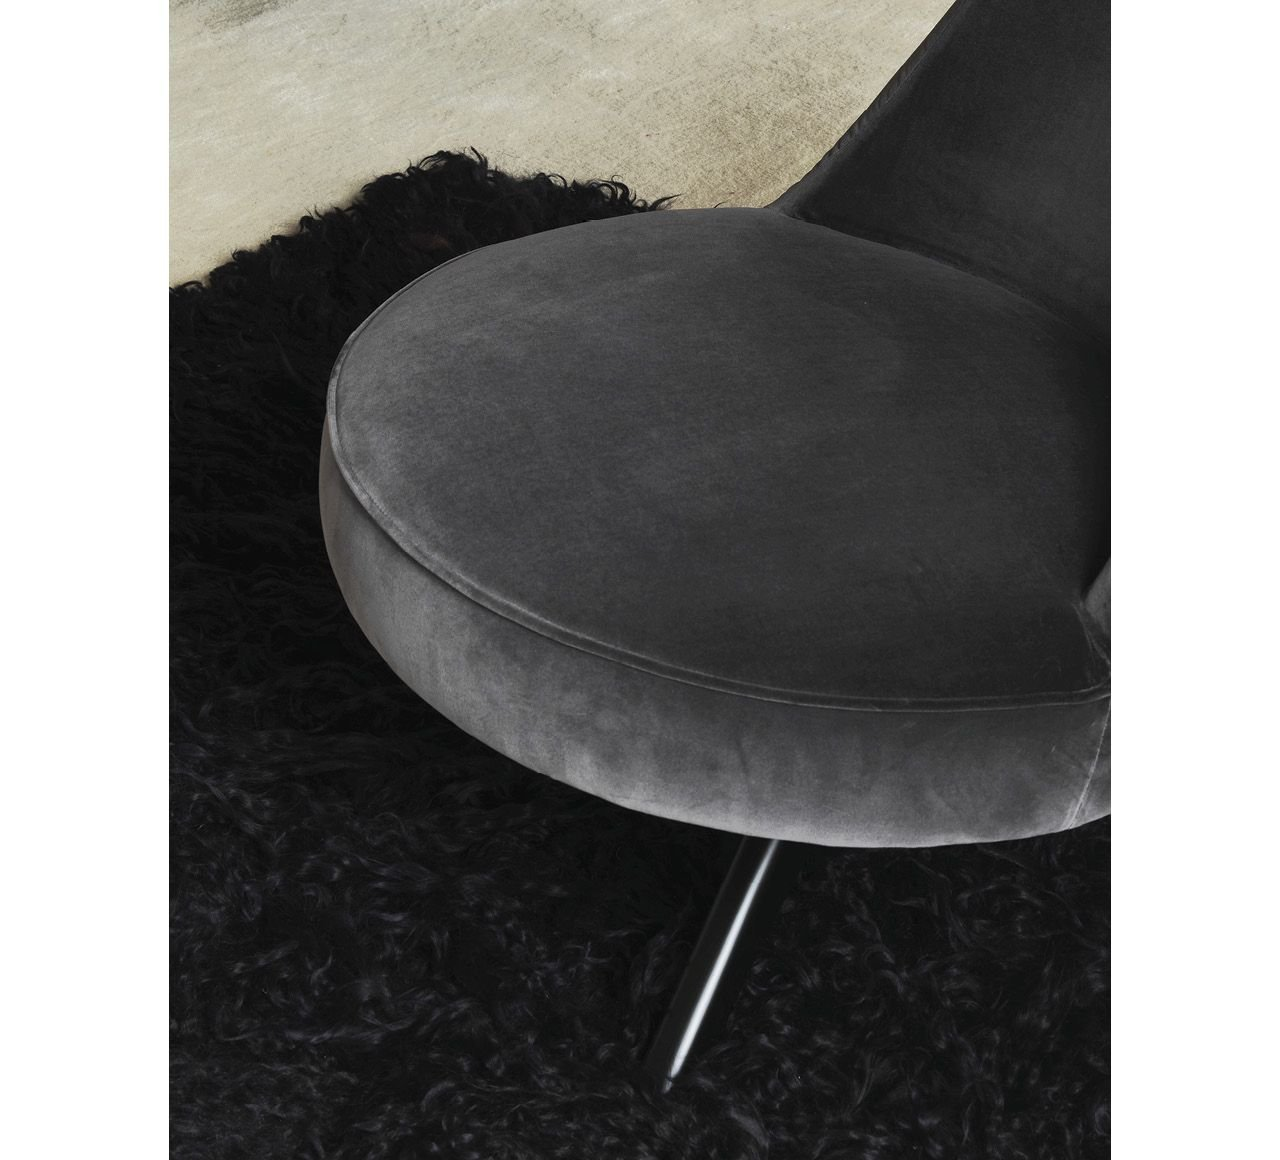 S.Marco Lounge chair from Driade